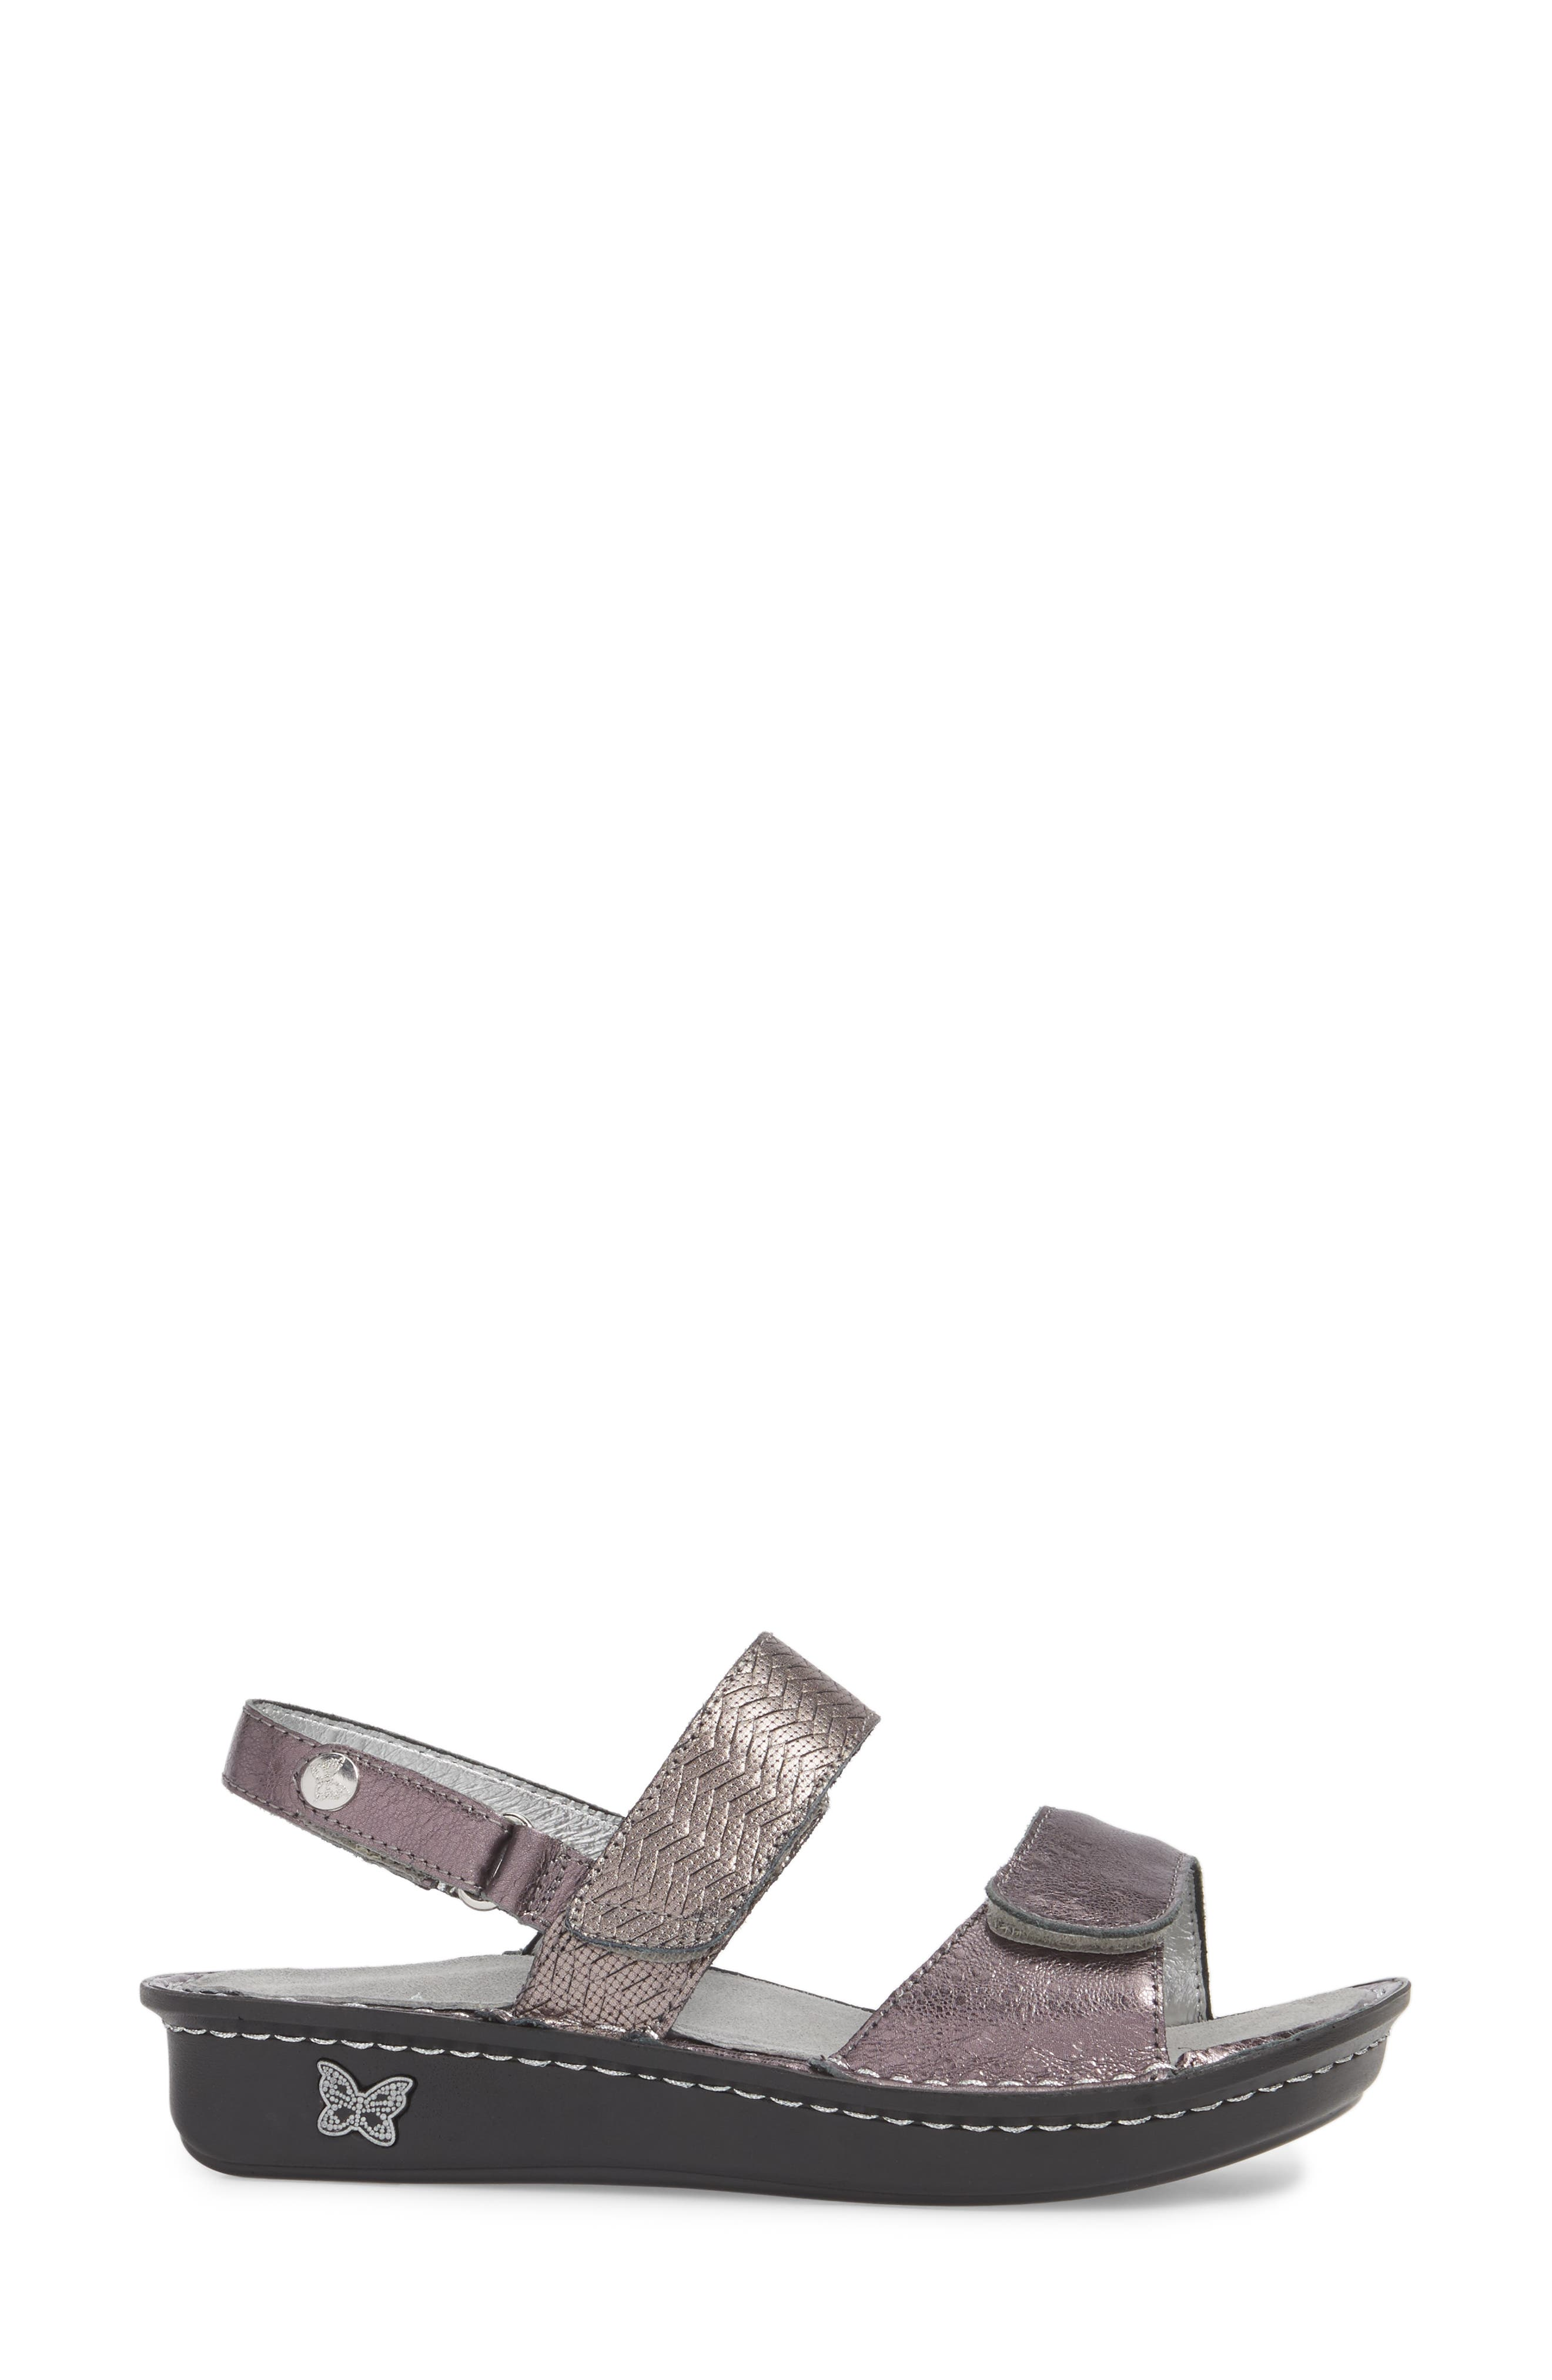 'Verona' Sandal,                             Alternate thumbnail 3, color,                             Braided Pewter Leather